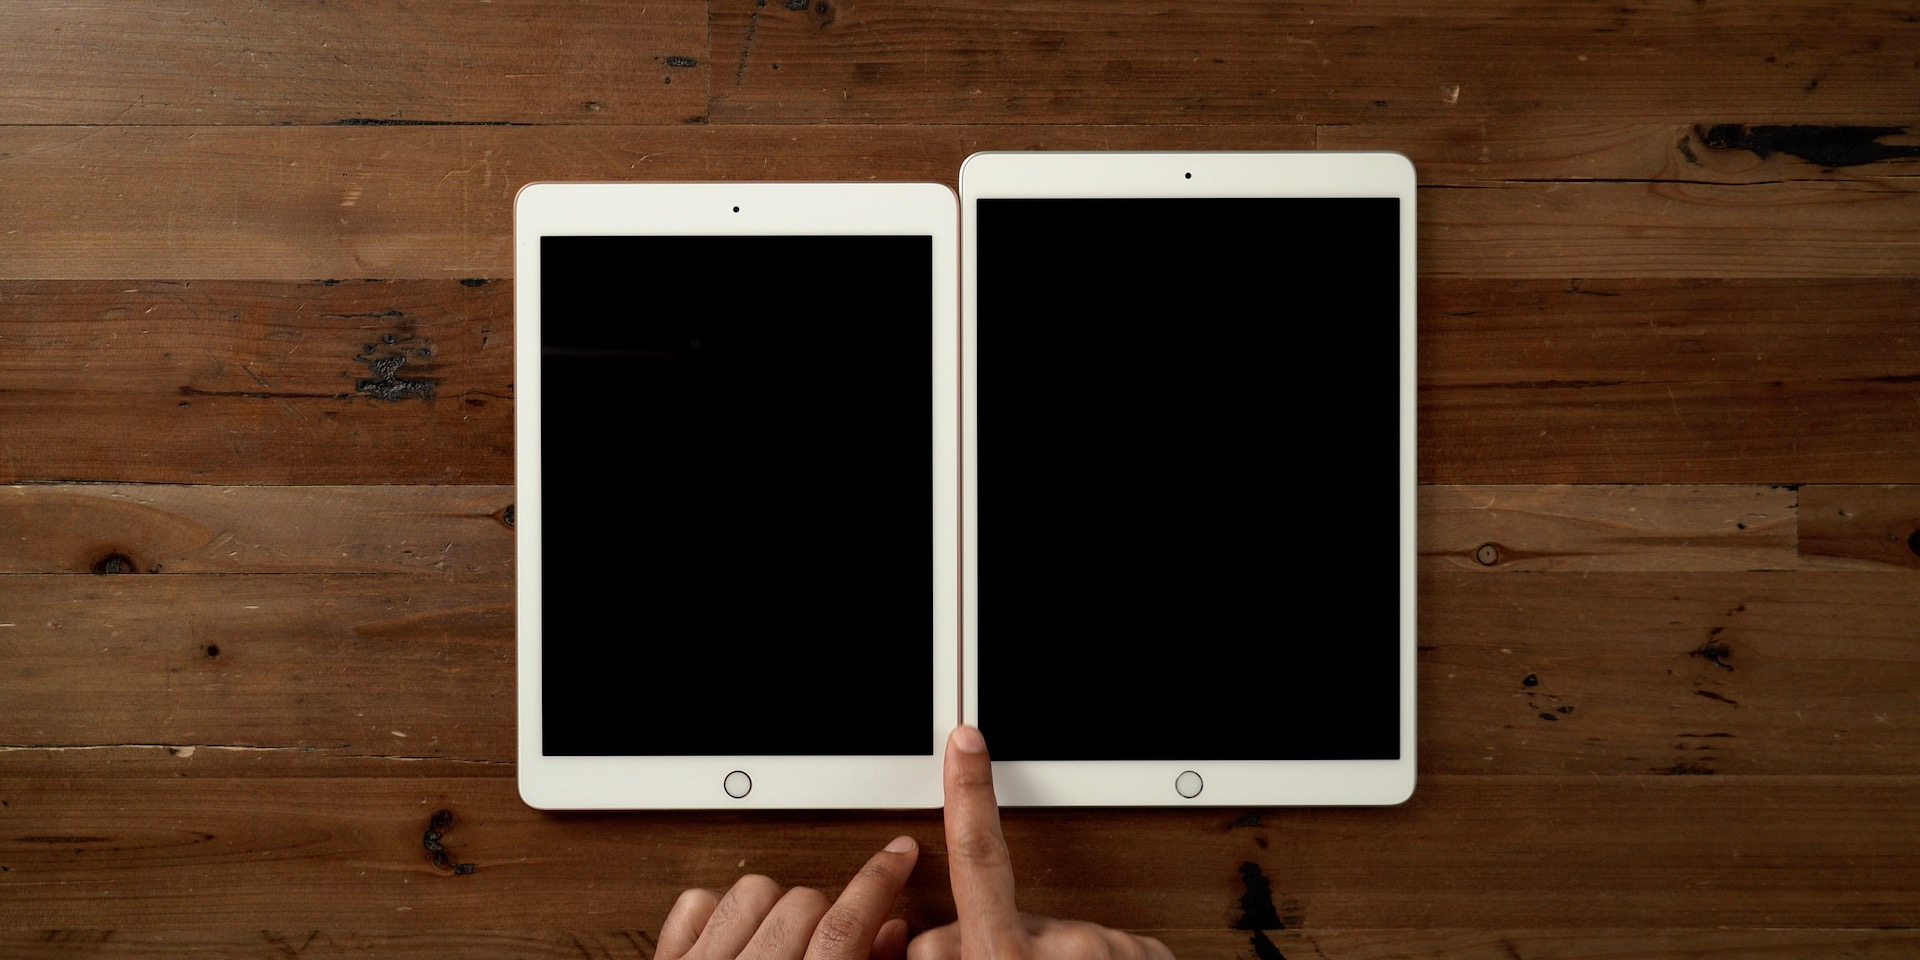 iPad Air 3 comparison